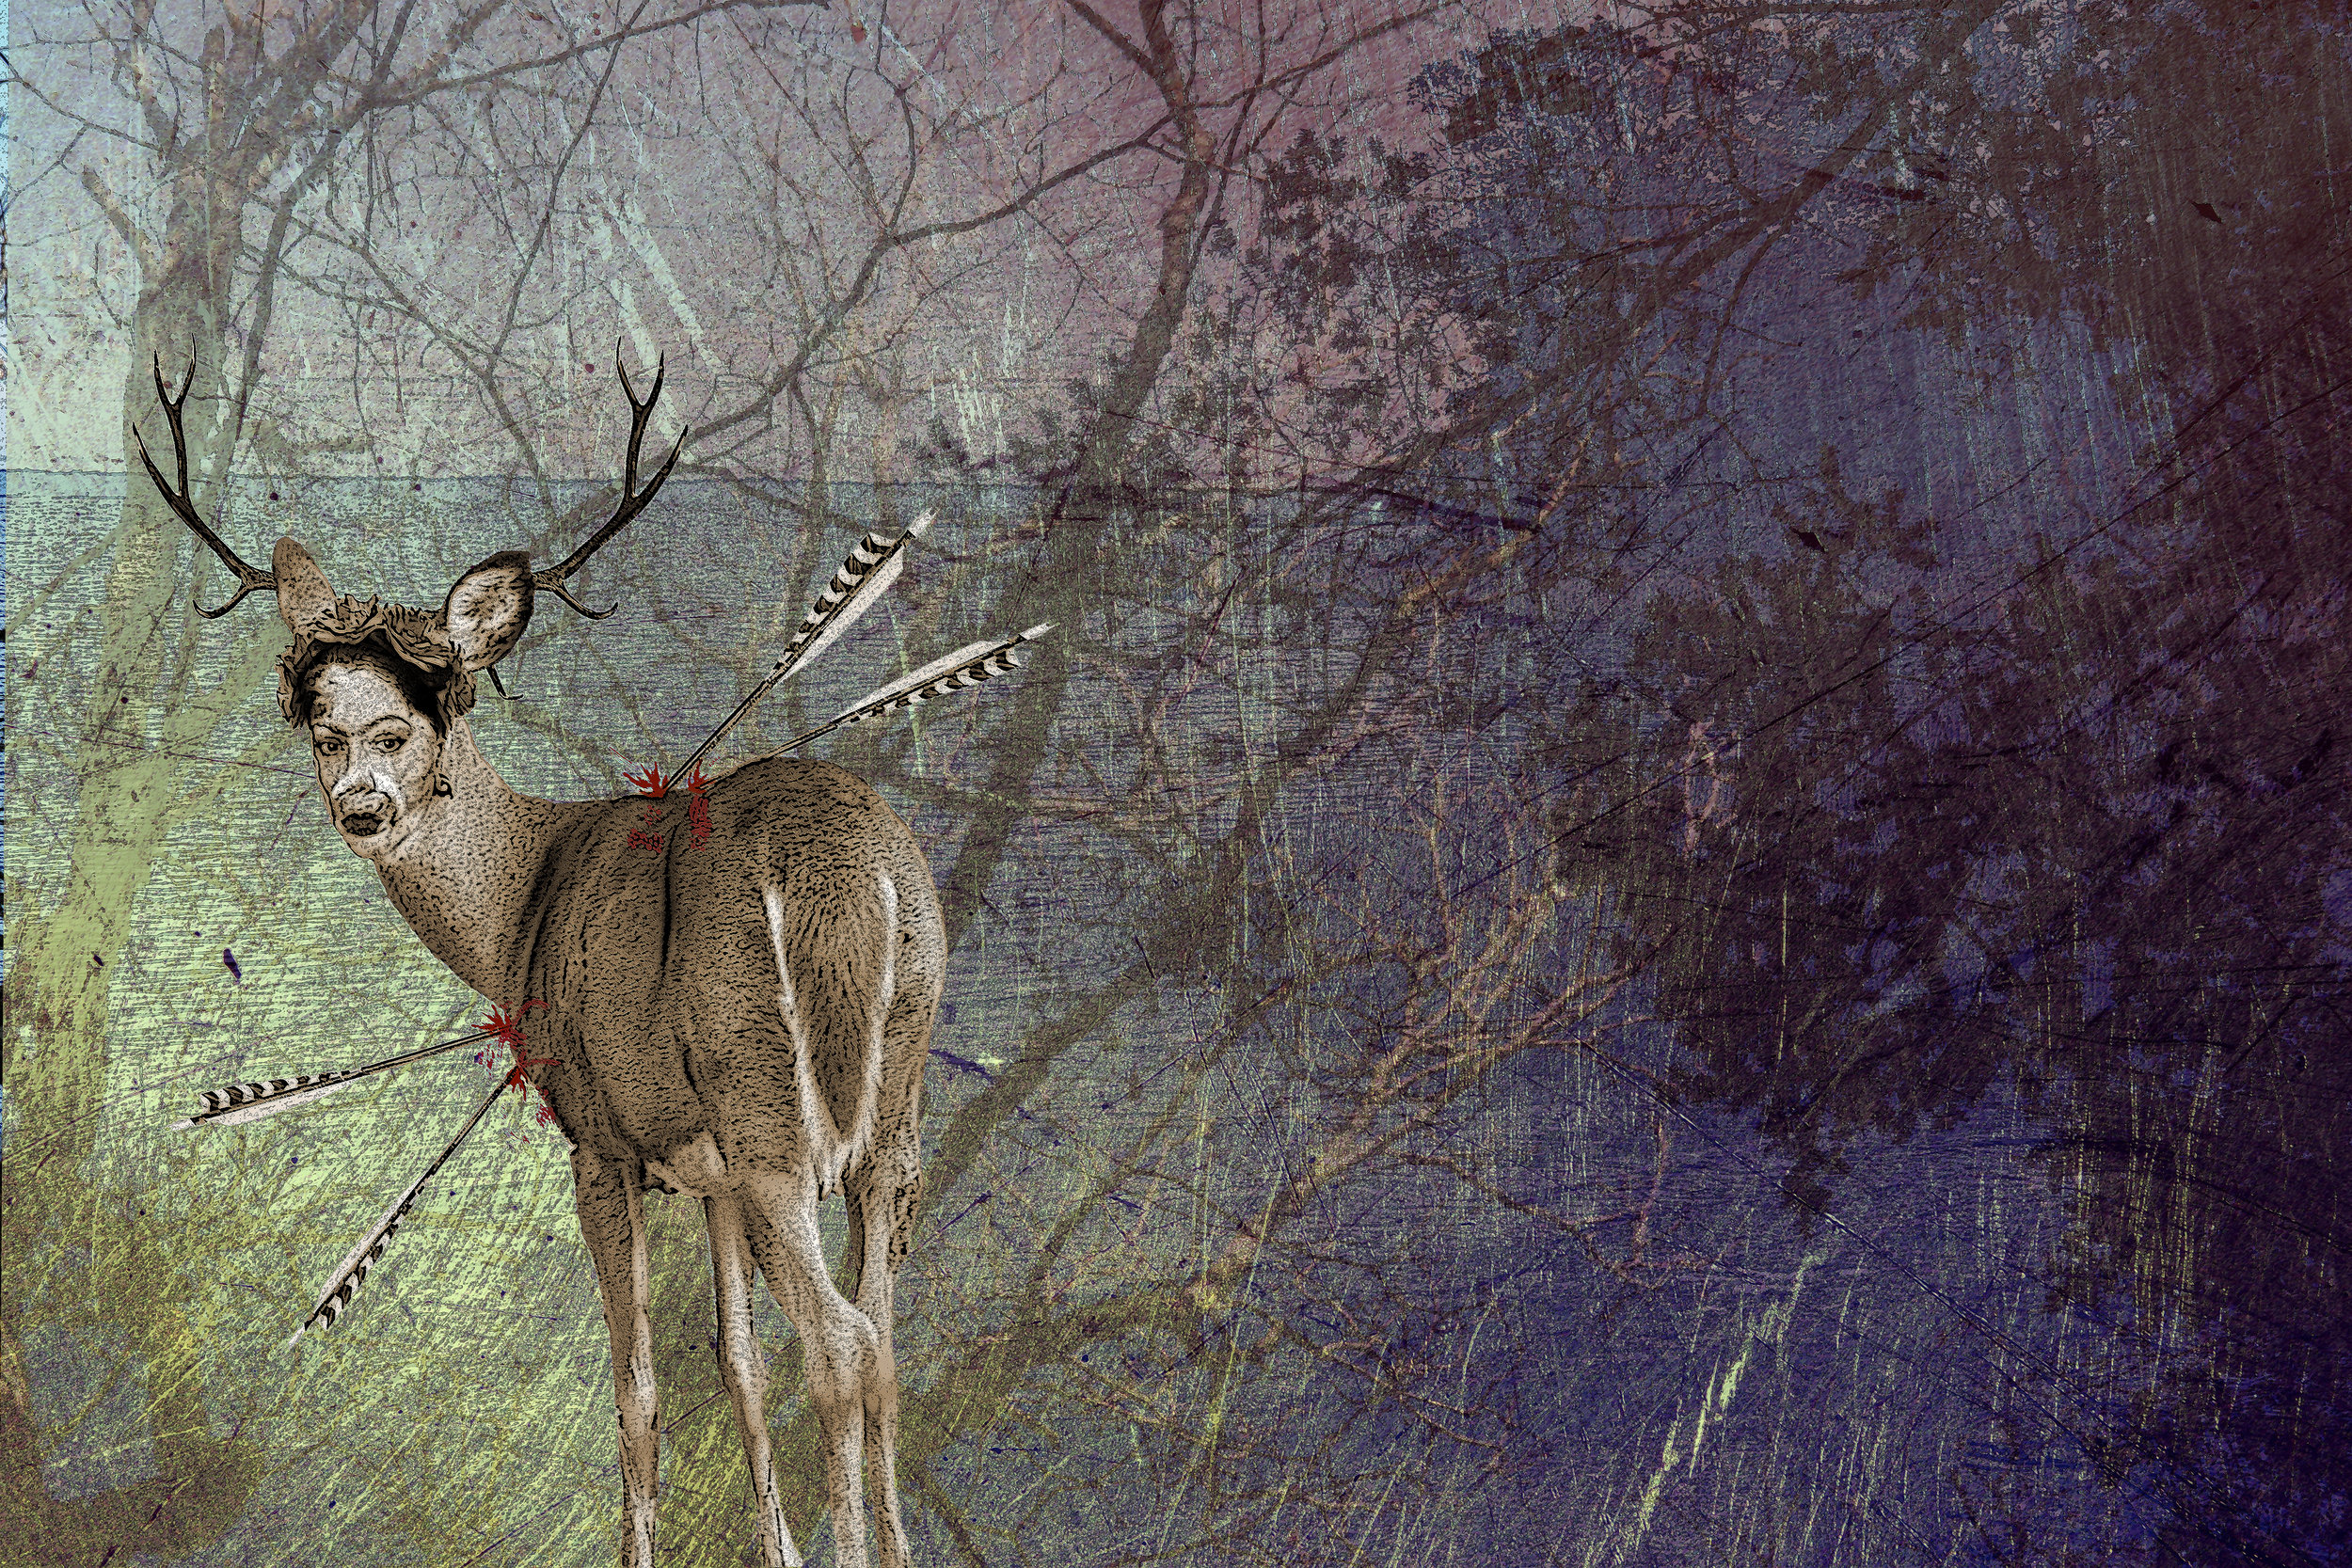 """The Hunted - Based on an experience of encountering illegal hunters shooting in a protected Marshlands, the hunted is based on the """"Deer's"""" Point of View.MODEL 